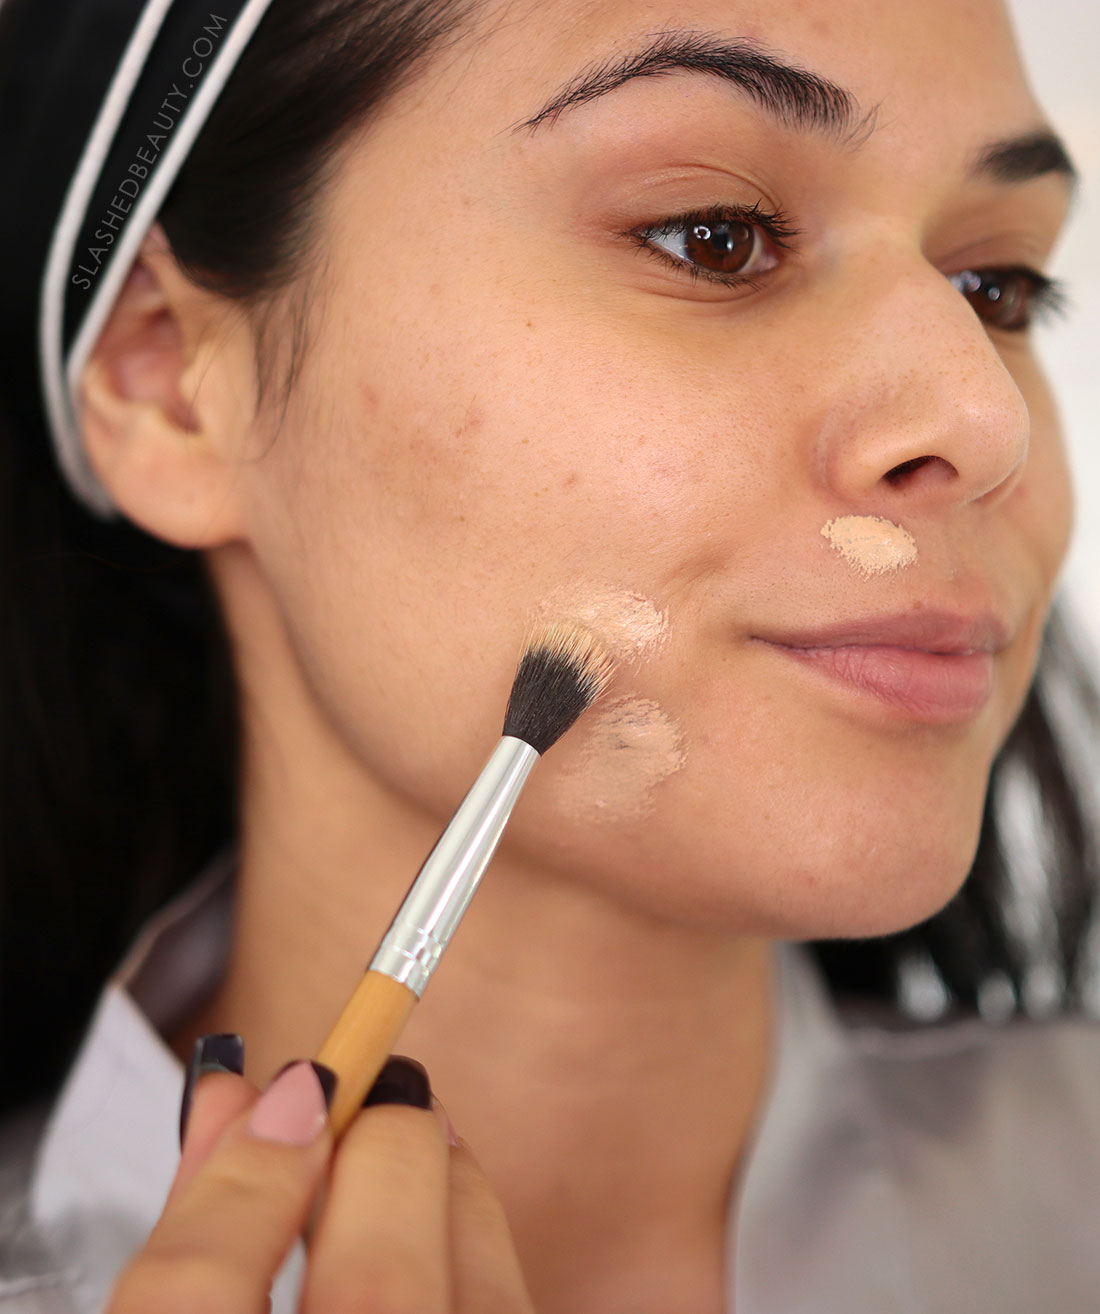 Using a blending brush to apply concealer over acne   How to Color Correct: Best Drugstore Makeup to Cover Acne   Slashed Beauty